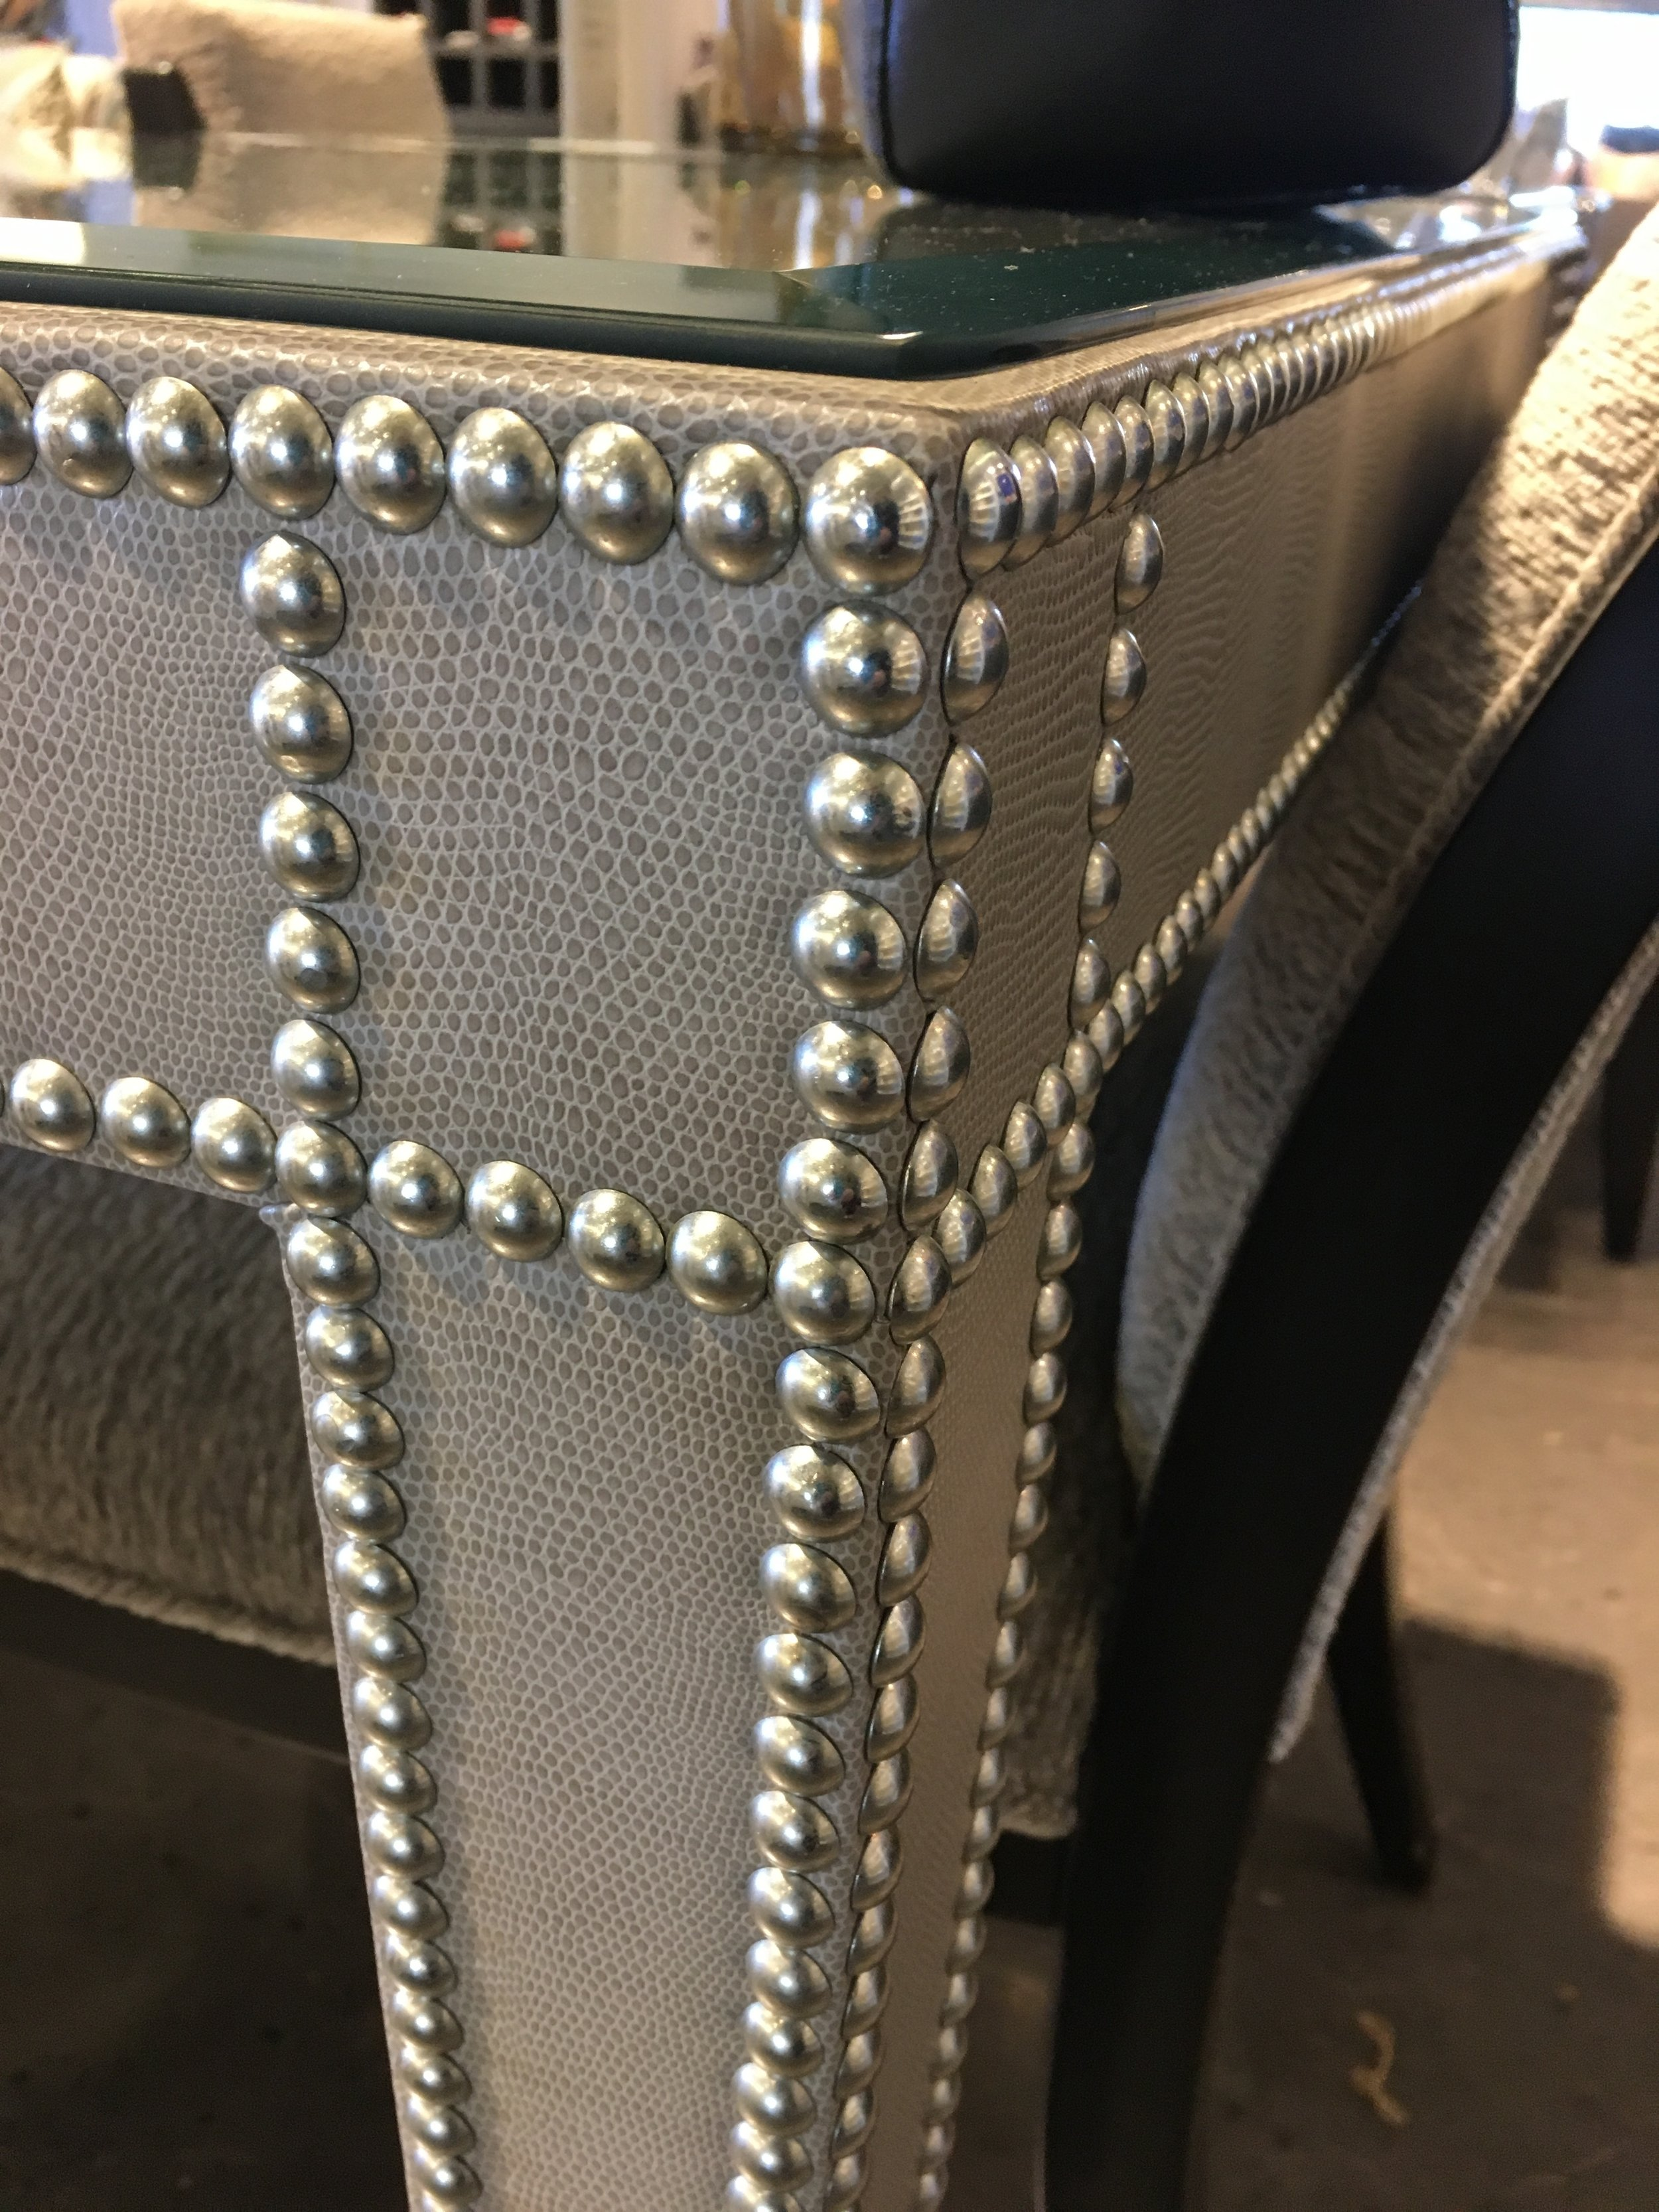 Choose your fabric or leather material and your nailhead color to customize this game table